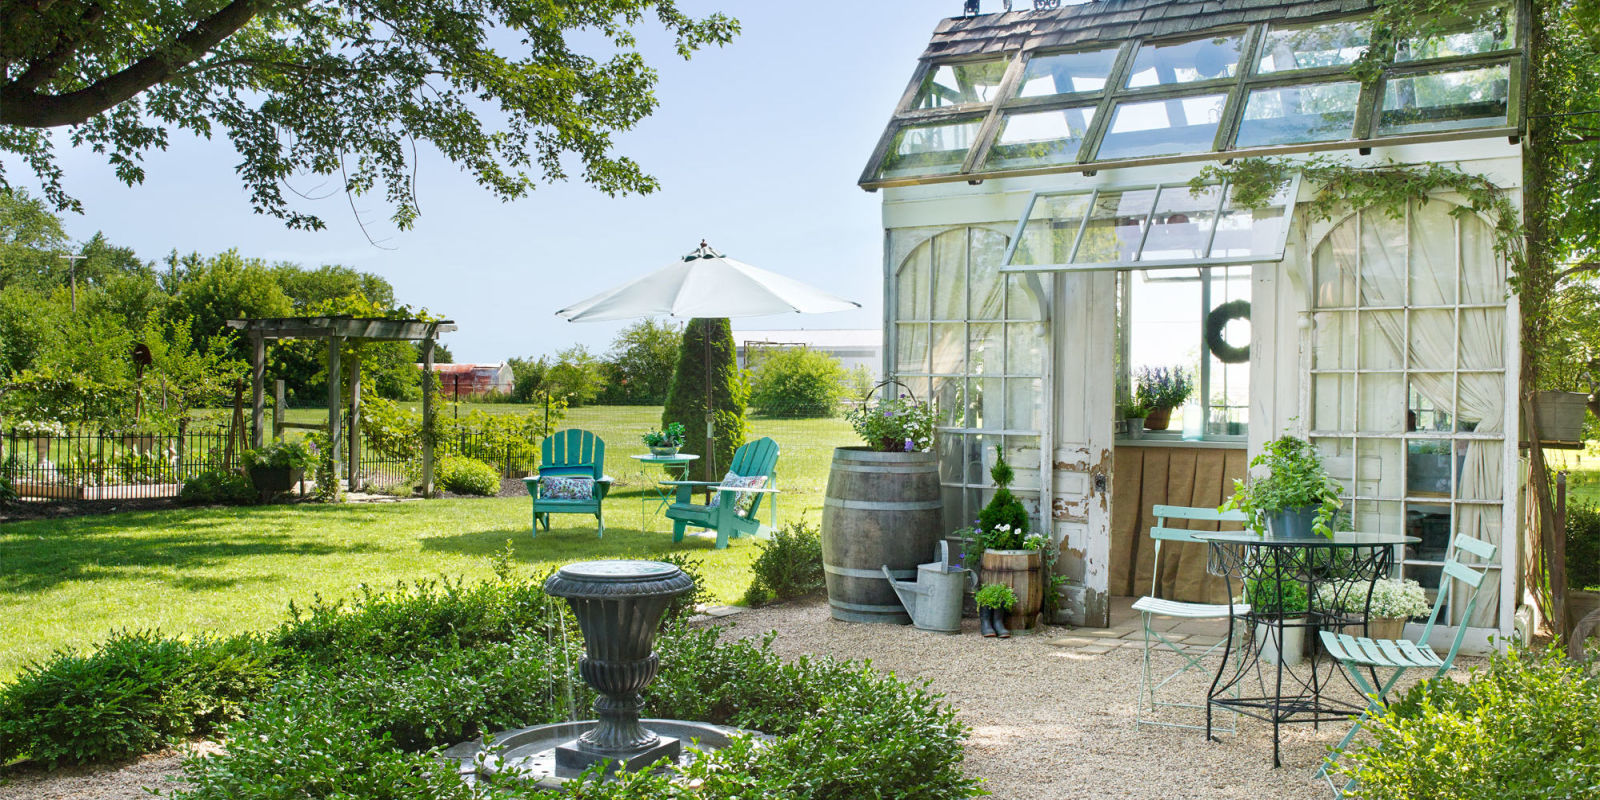 Country backyard garden ideas - Country Backyard Garden Ideas 2